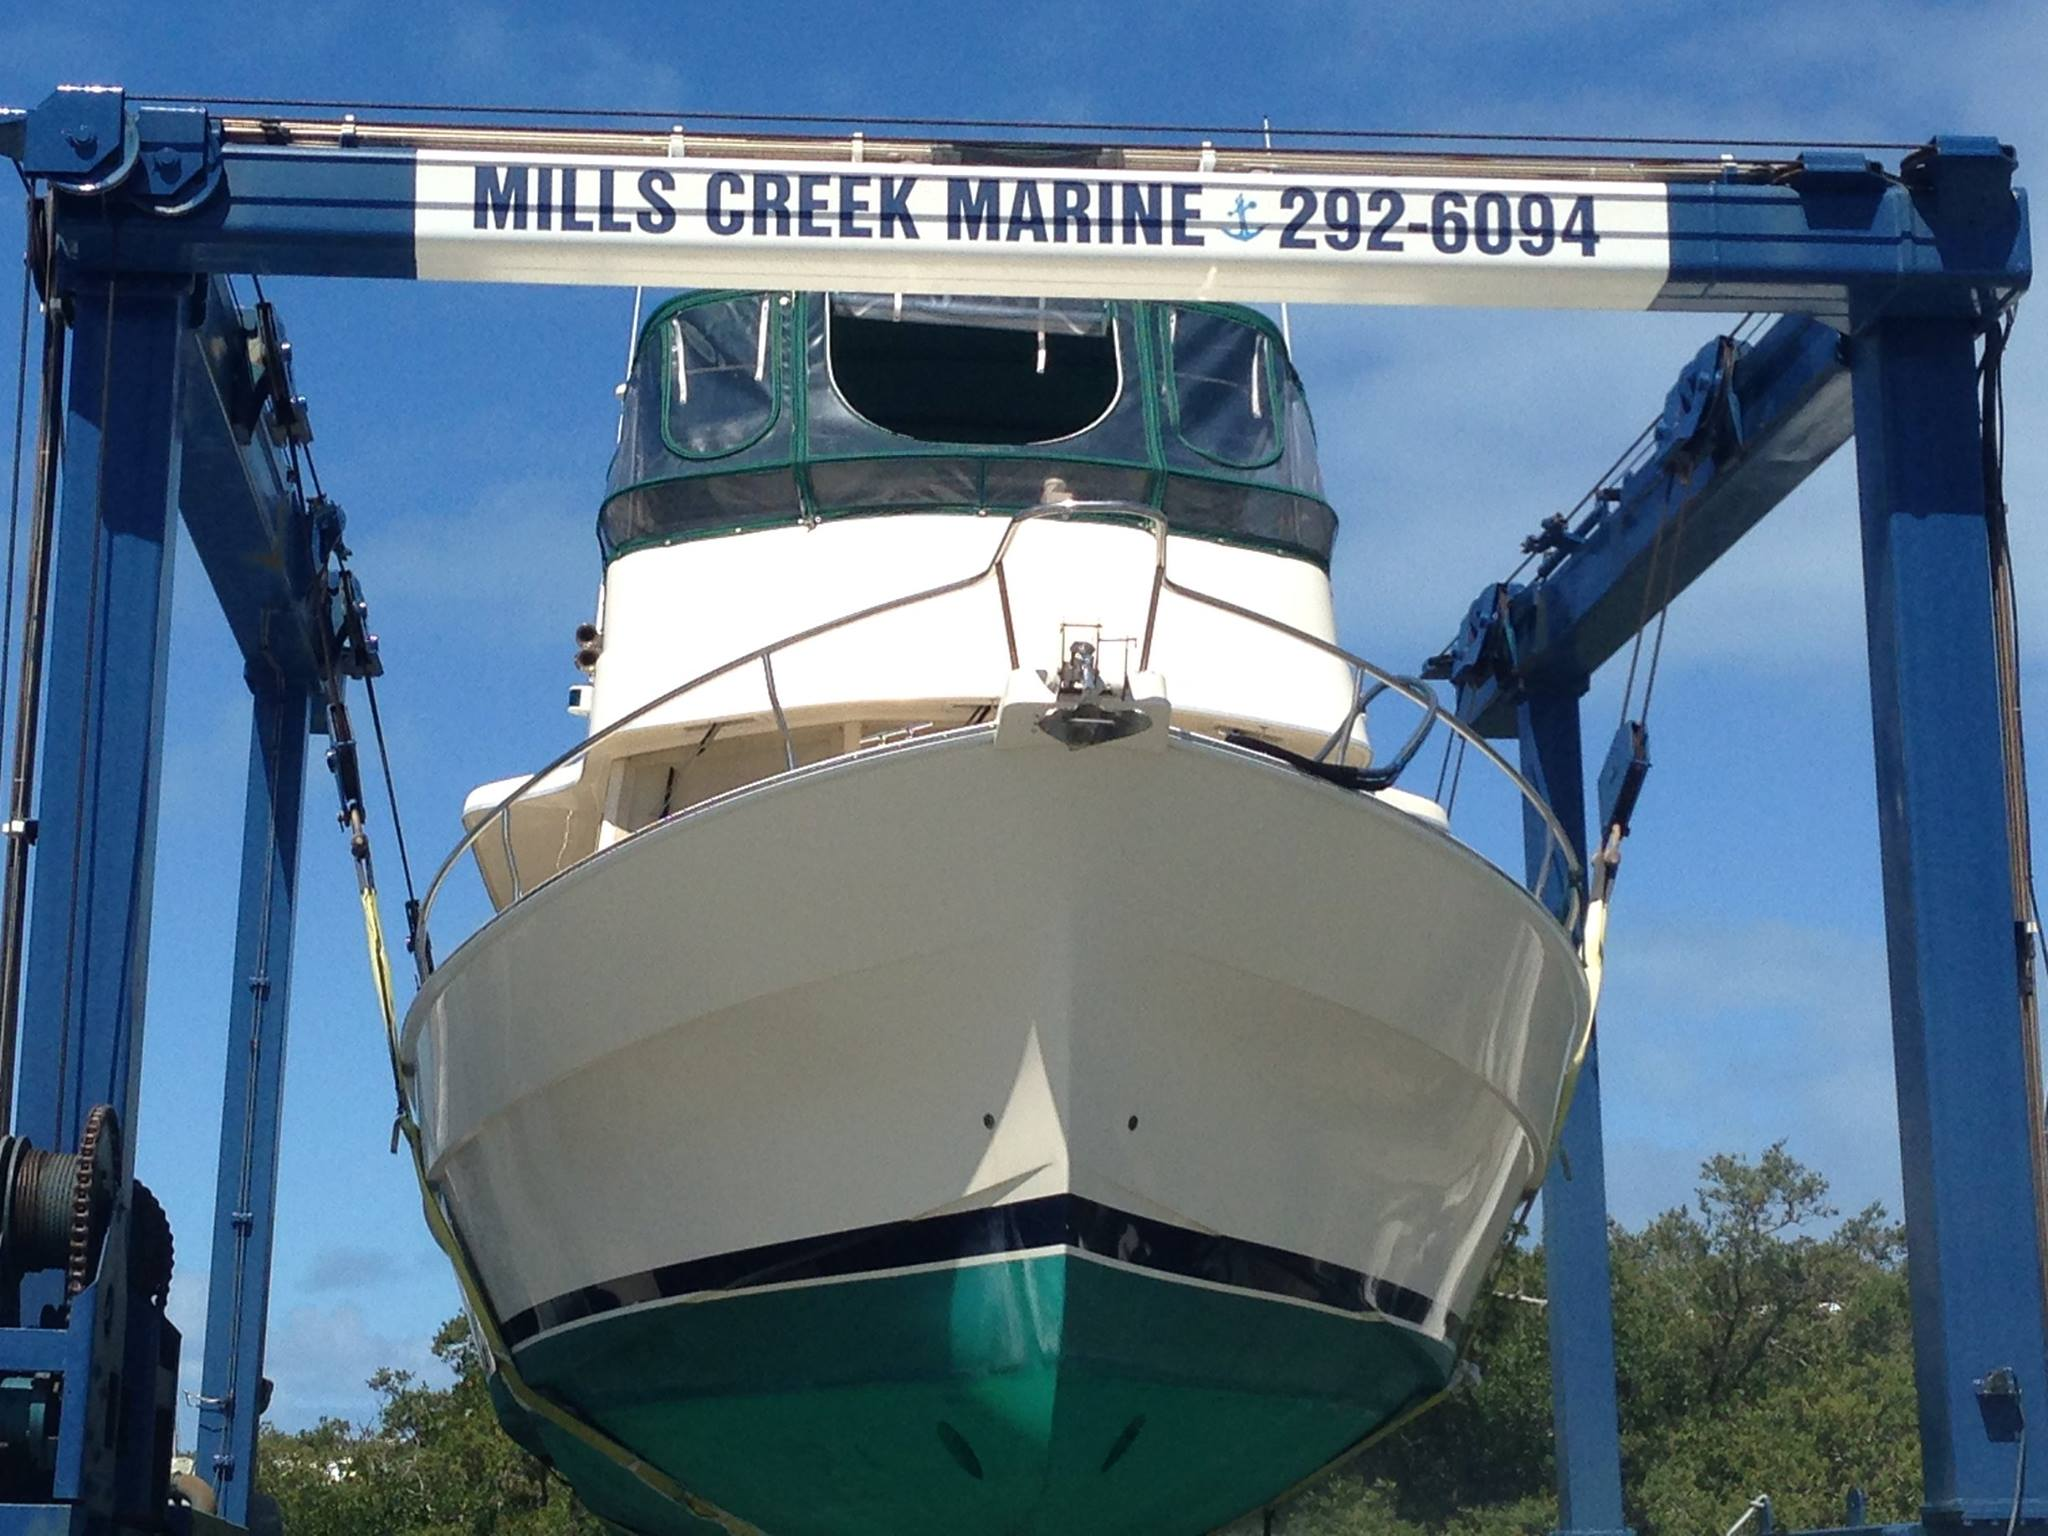 Mills Creek Marine Ltd.